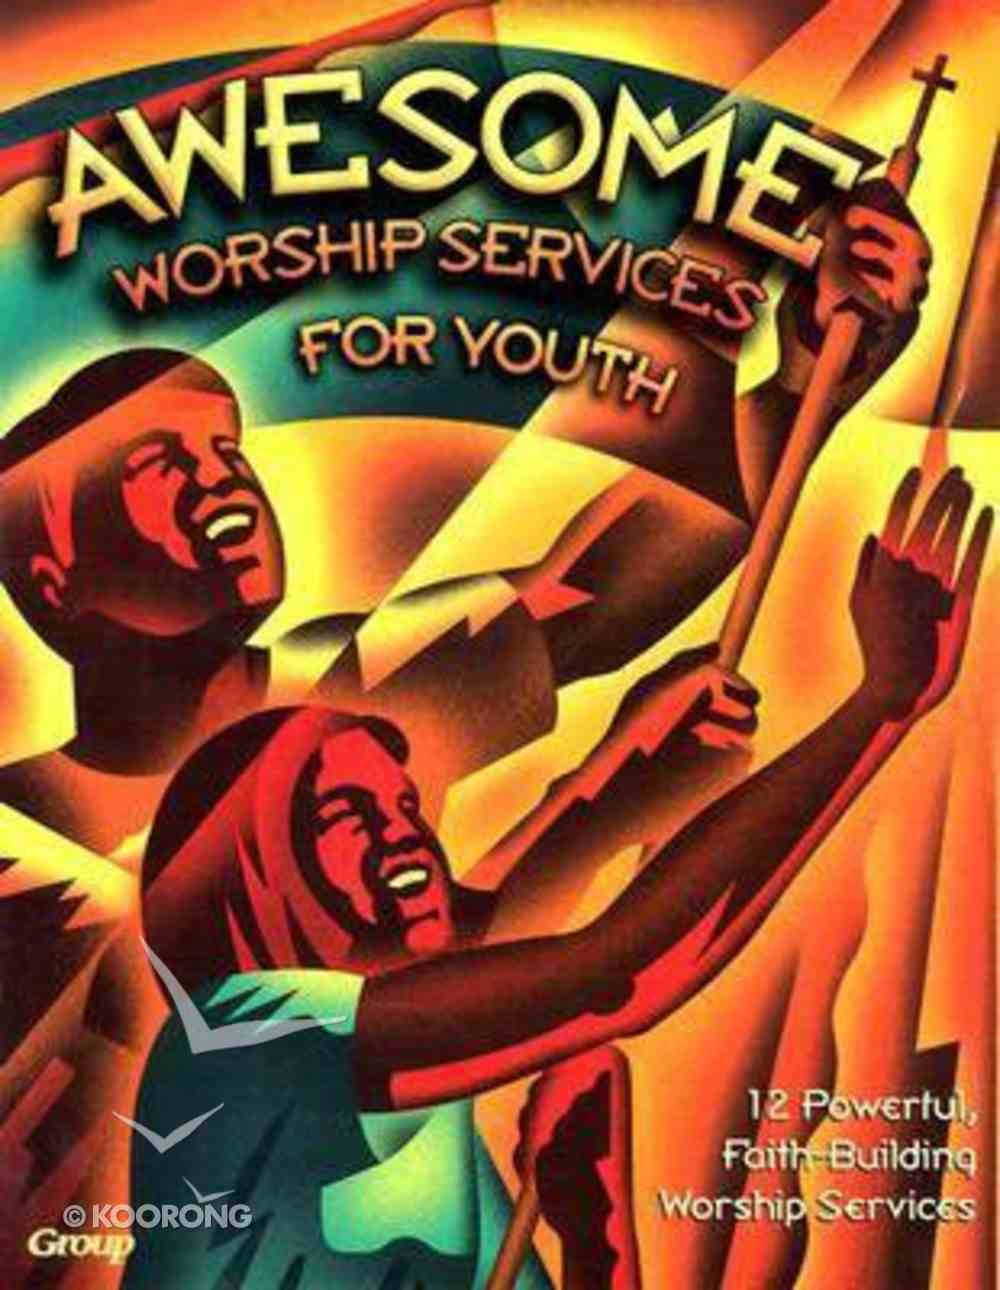 Awesome Worship Services For Youth Paperback